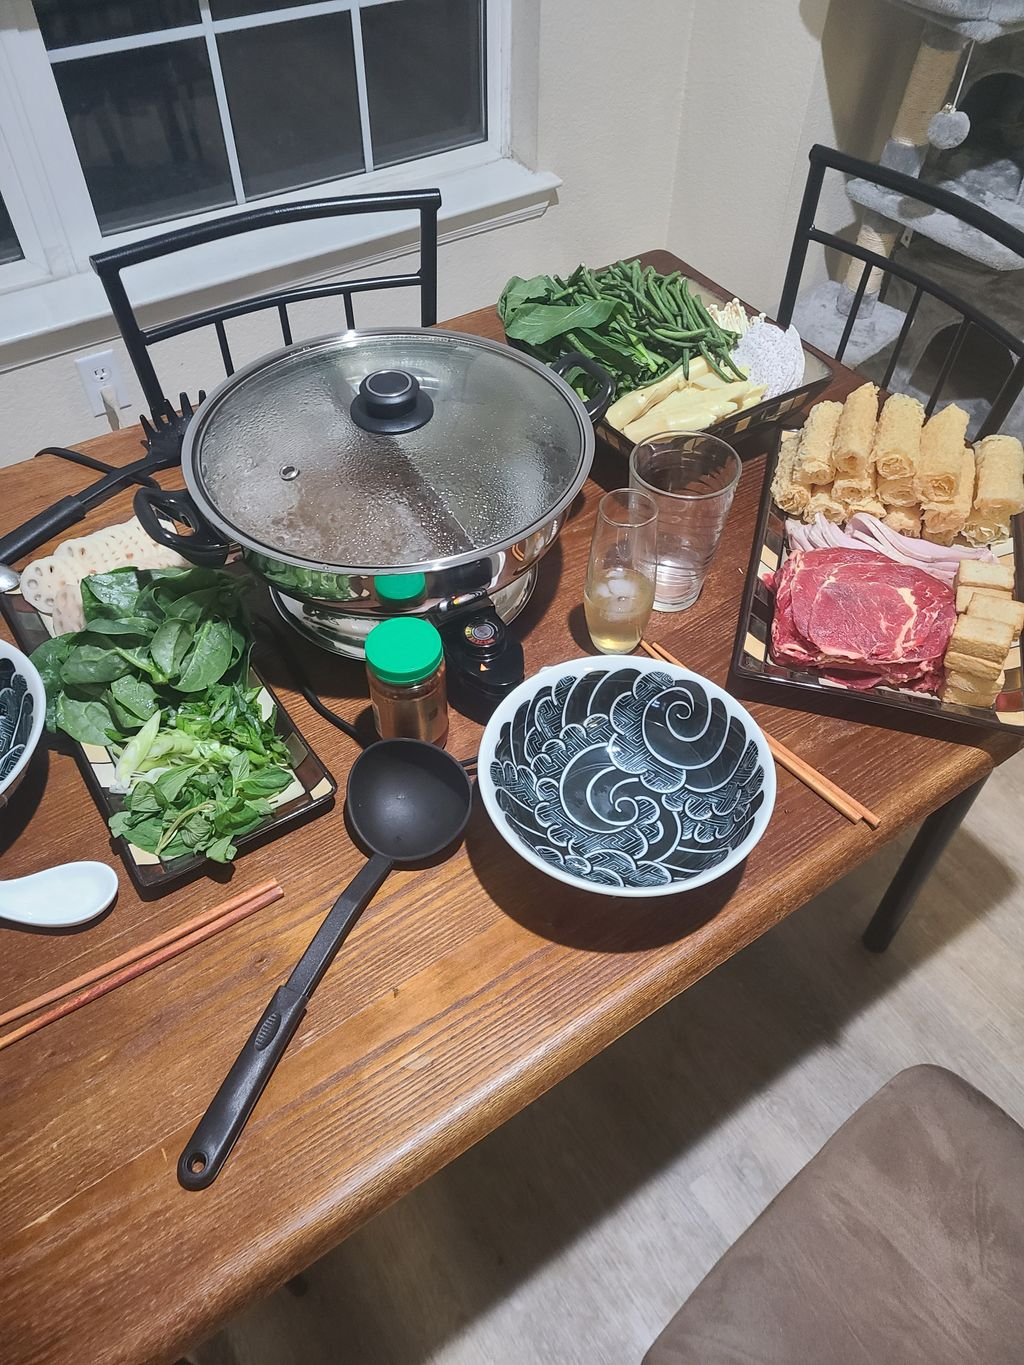 Hotpot dinner and Cocktails